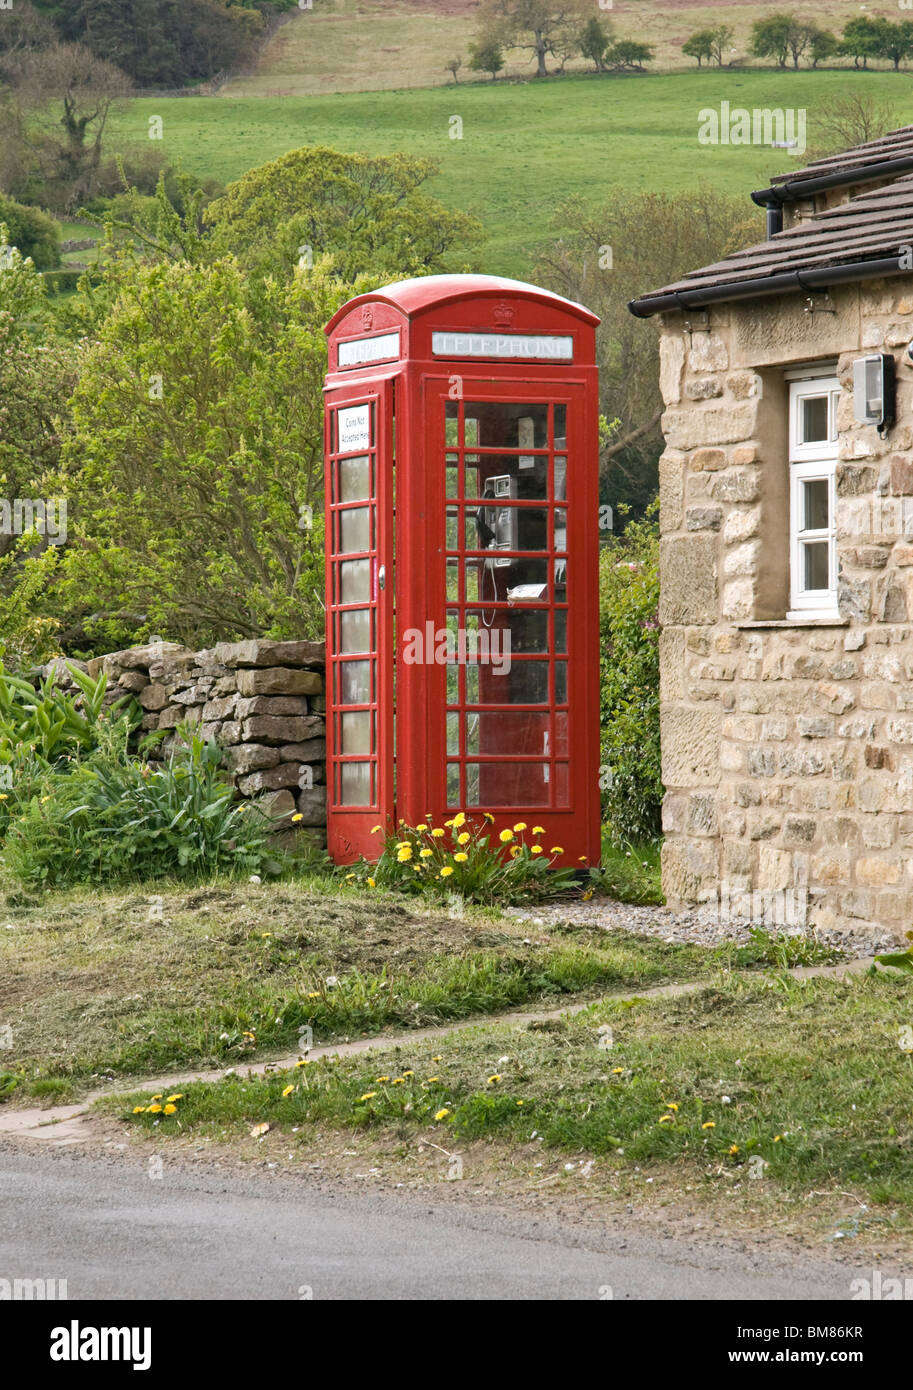 Red telephone box outside the village hall in the village of East Witton, Wensleydale, Yorkshire dales,  North Yorkshire - Stock Image